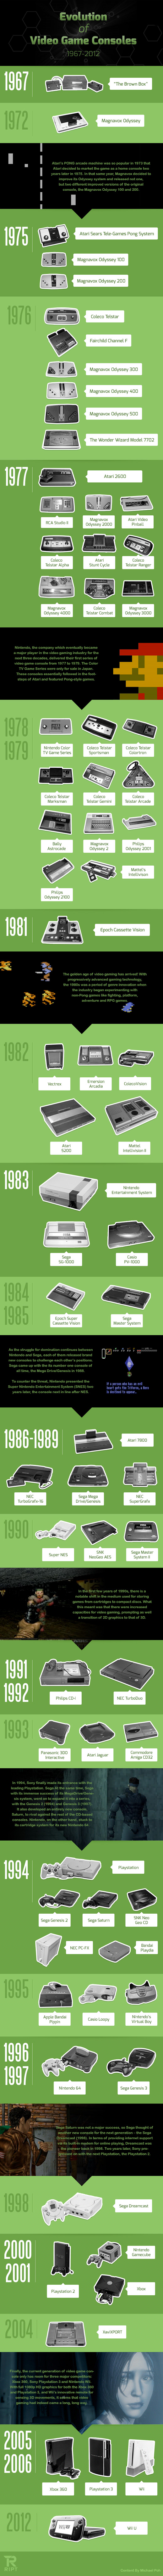 How video games have evolved from the year 1967 - 2012